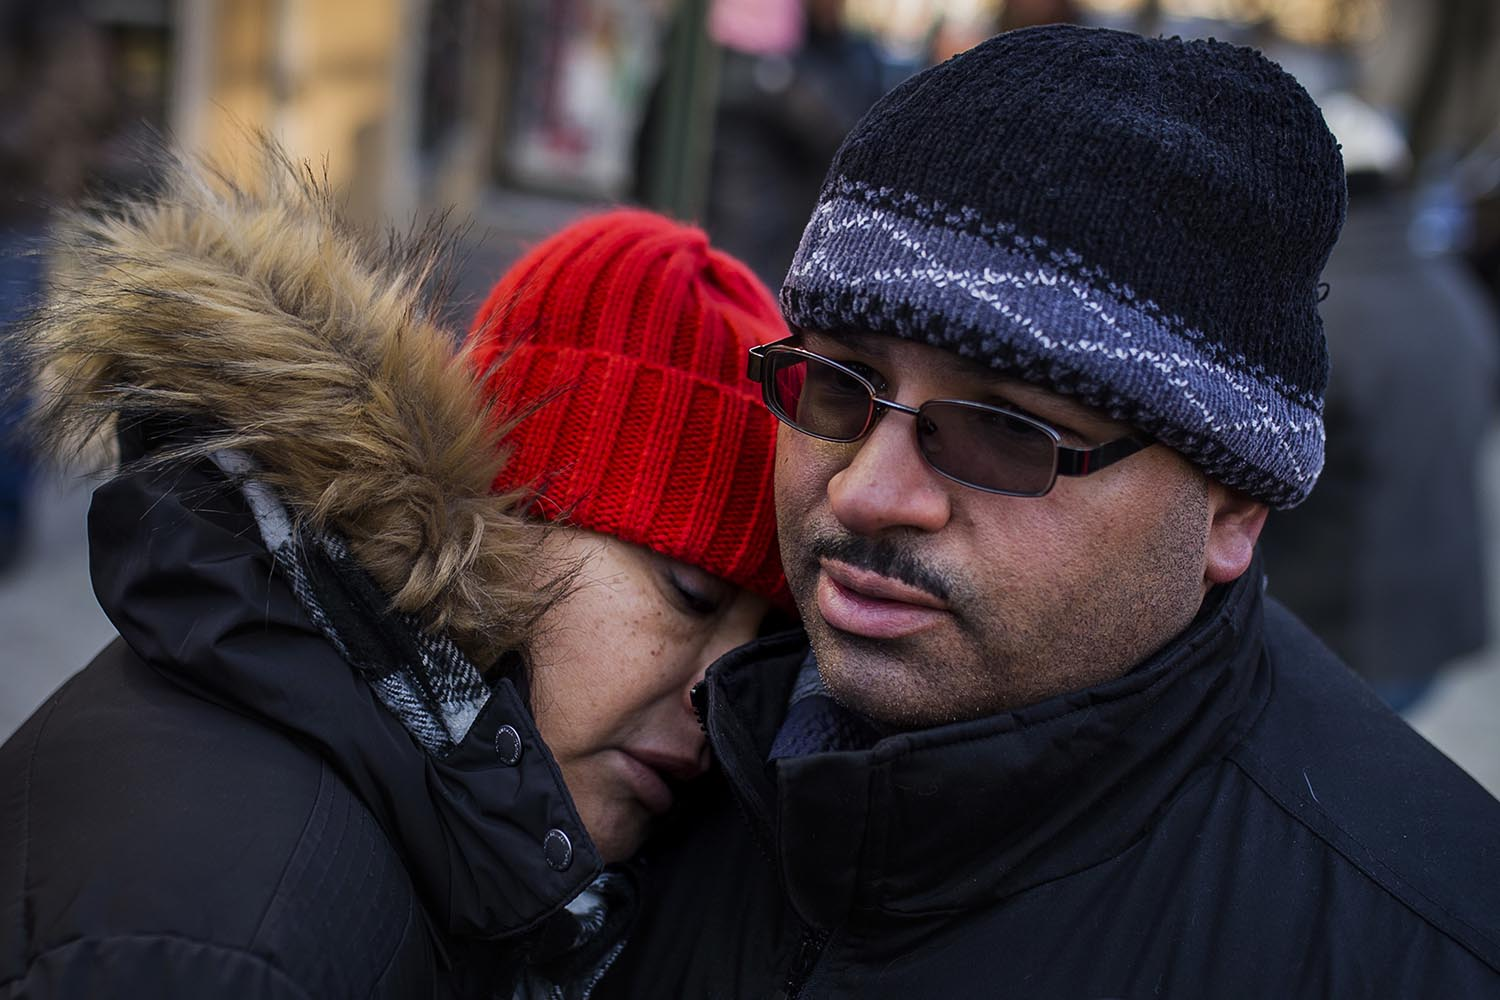 <div class='meta'><div class='origin-logo' data-origin='AP'></div><span class='caption-text' data-credit='AP Photo/Andres Kudacki'>Betty Rodriguez and her husband Joel Rodriguez, residents of the building where more than 10 people died in a fire on Thursday, react as they talk to the media on Dec. 29, 2017.</span></div>